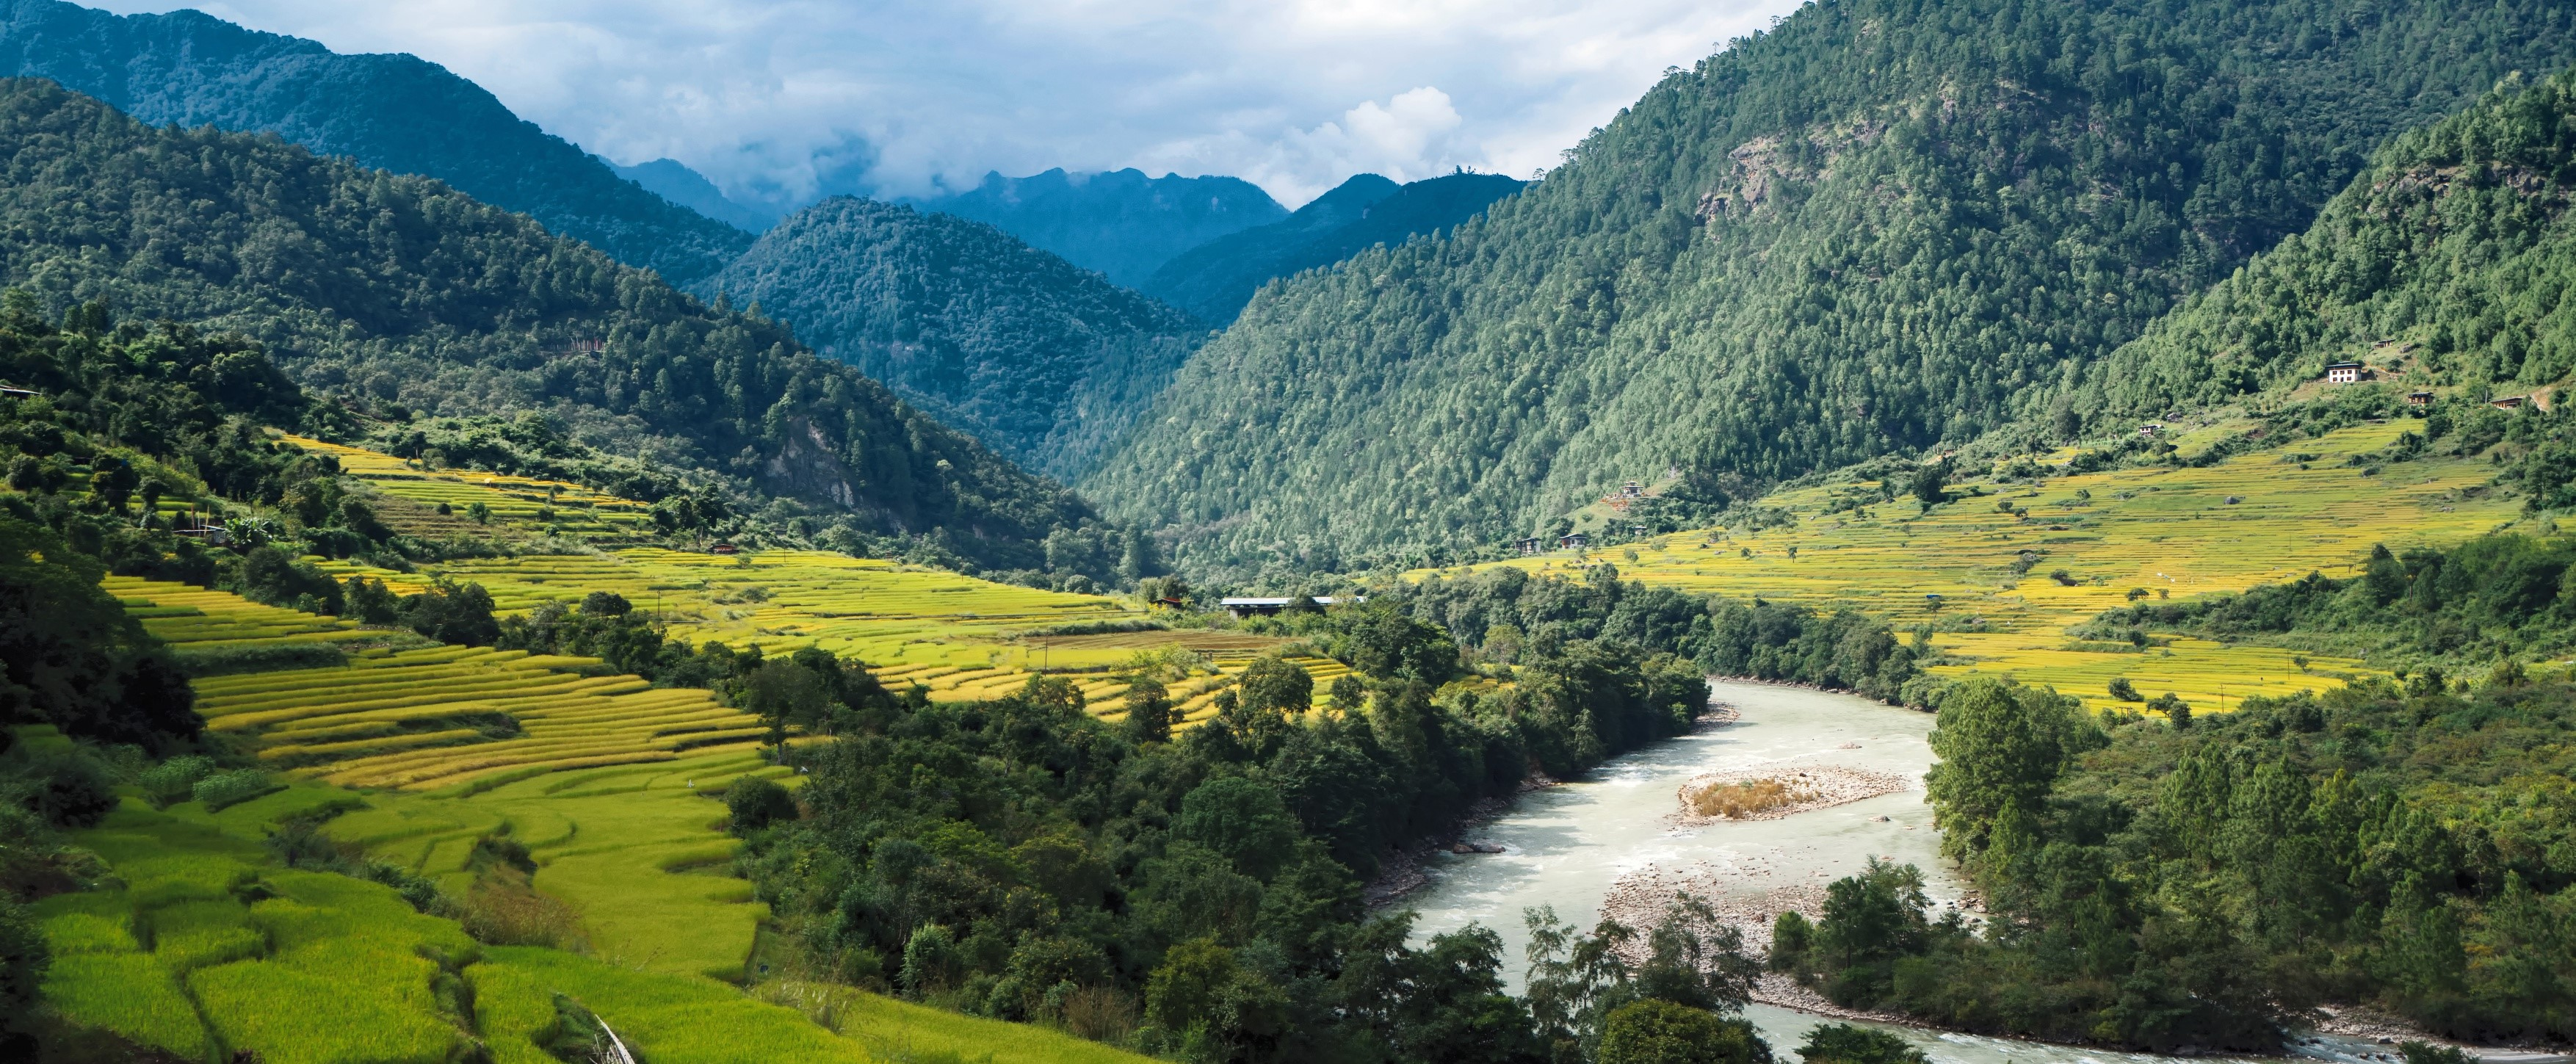 Punakha-river-Valley-bhutan